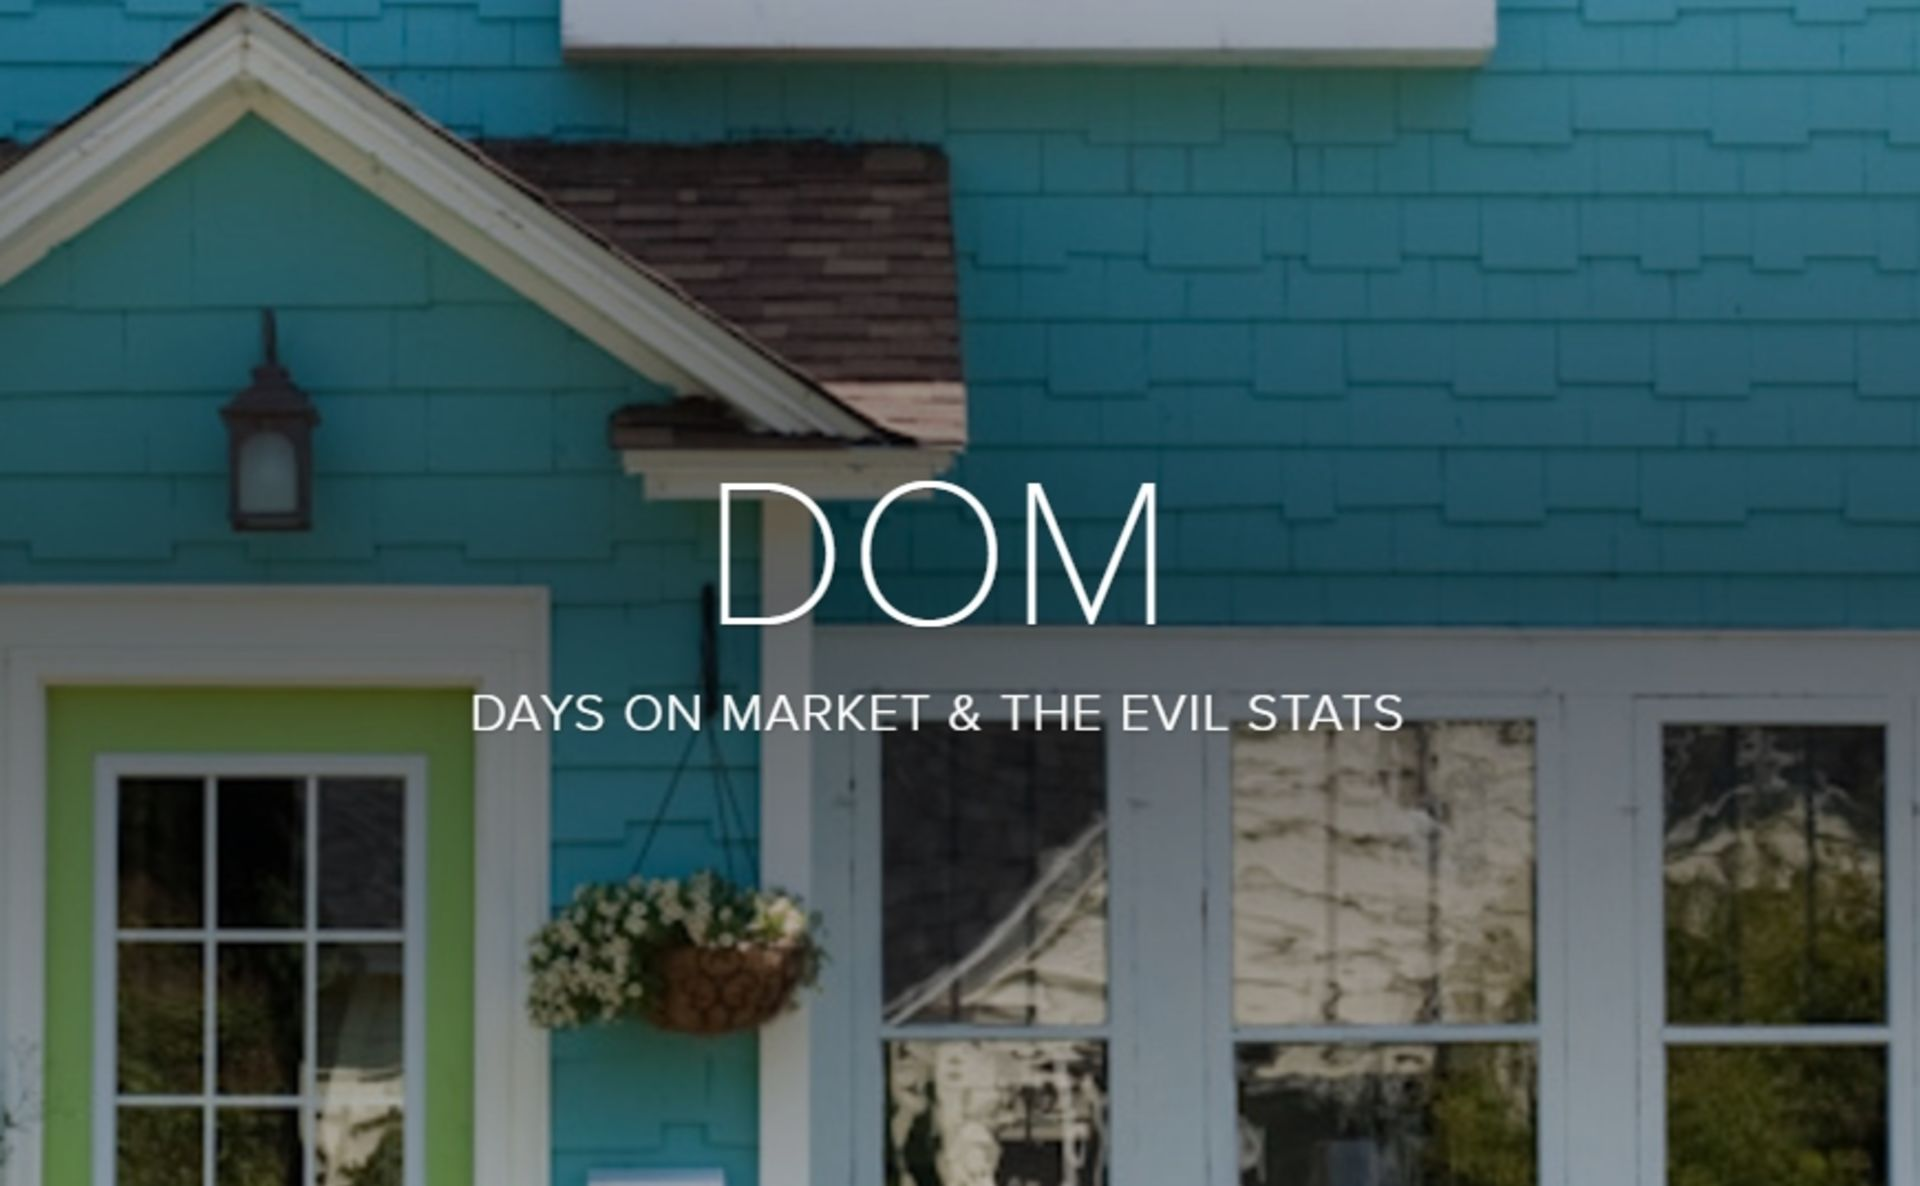 DOM: Days on Market. The Scary Stats And Evil Behind The Cause